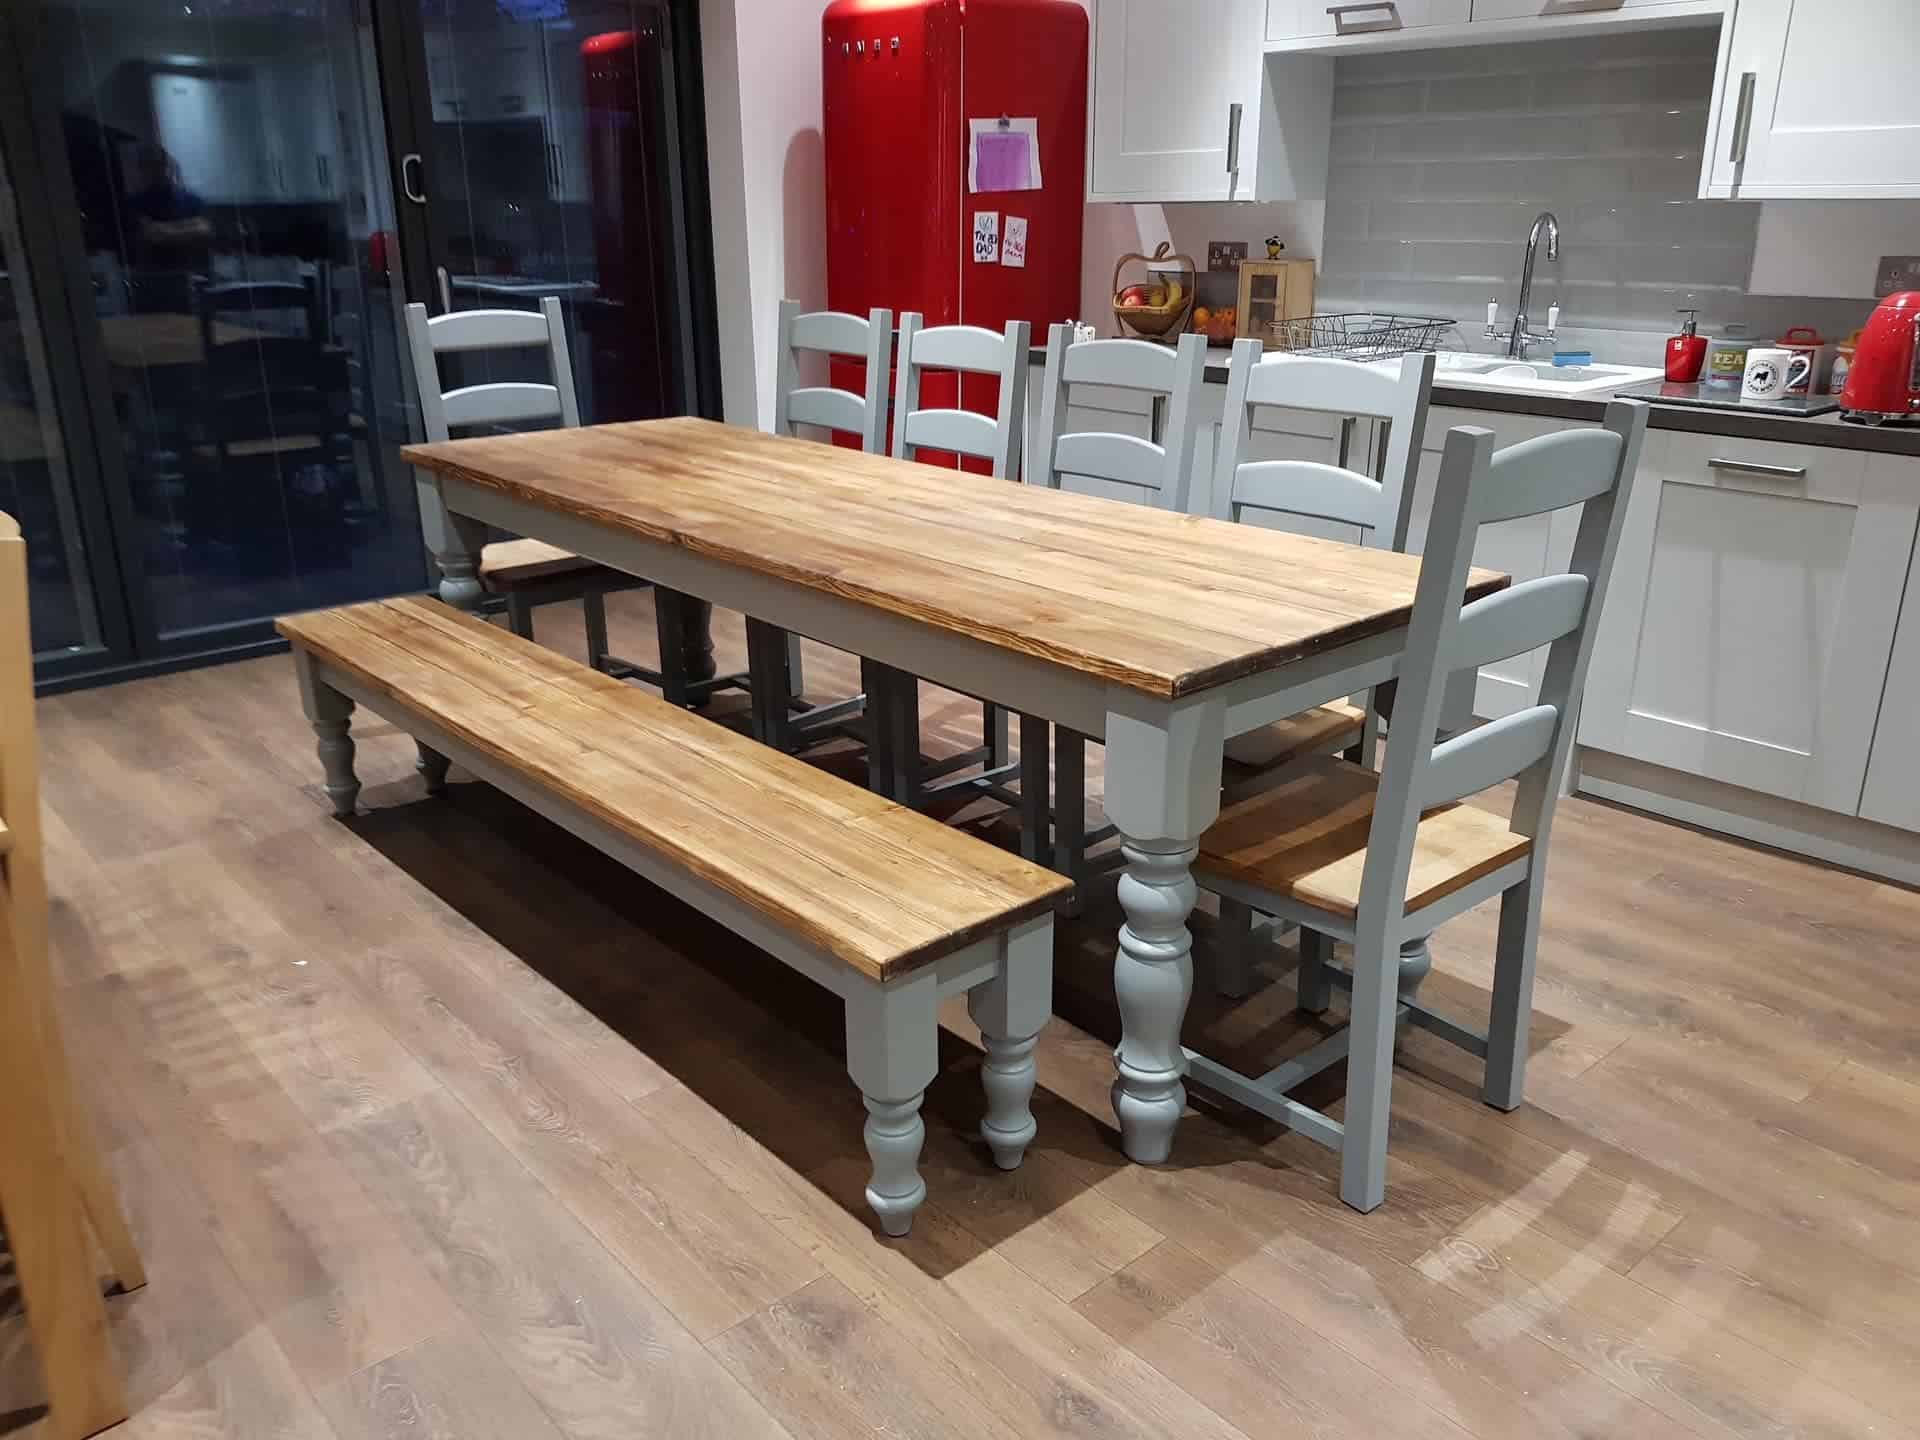 Farmhouse Table with shaker chairs